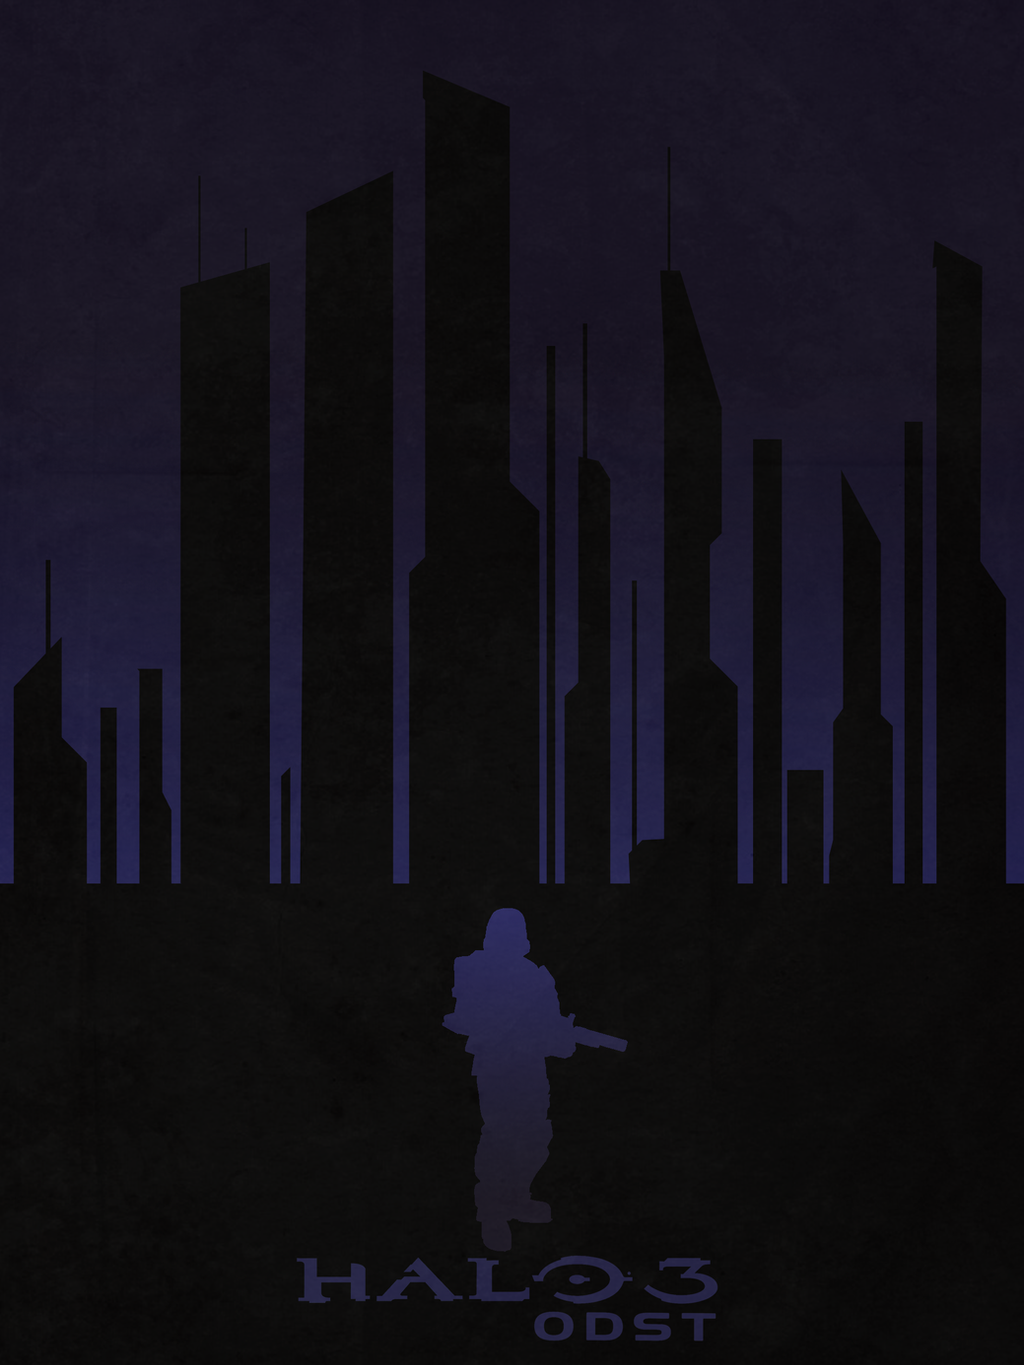 Halo 3 ODST by Noble--6